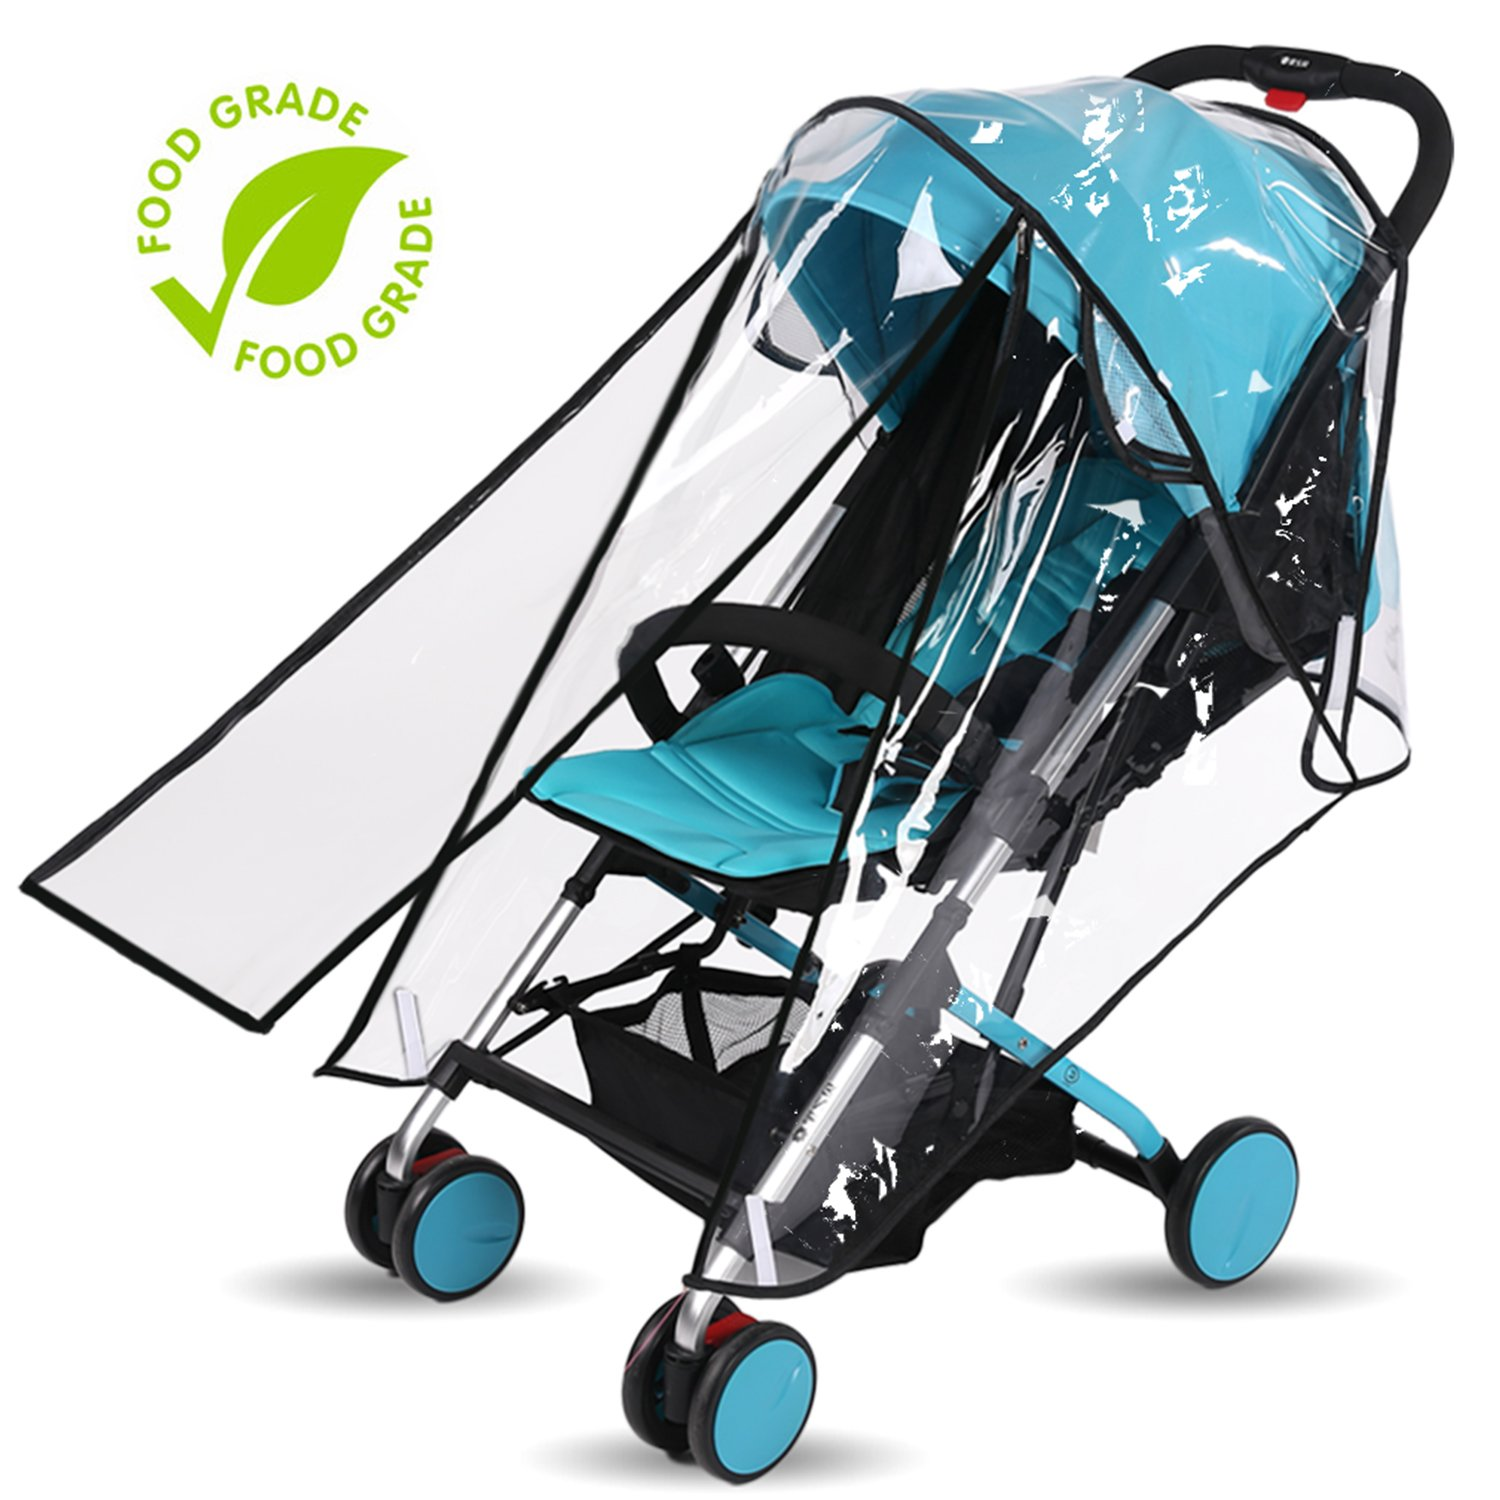 Baby Stroller Rain Cover Weather Shield Accessories Universal Size Protect from Rain Wind Snow Dust Insects Water Proof Ventilate Clear Food Grade Materia EVA Plastic Zipper Black White (black, small) by AncBace